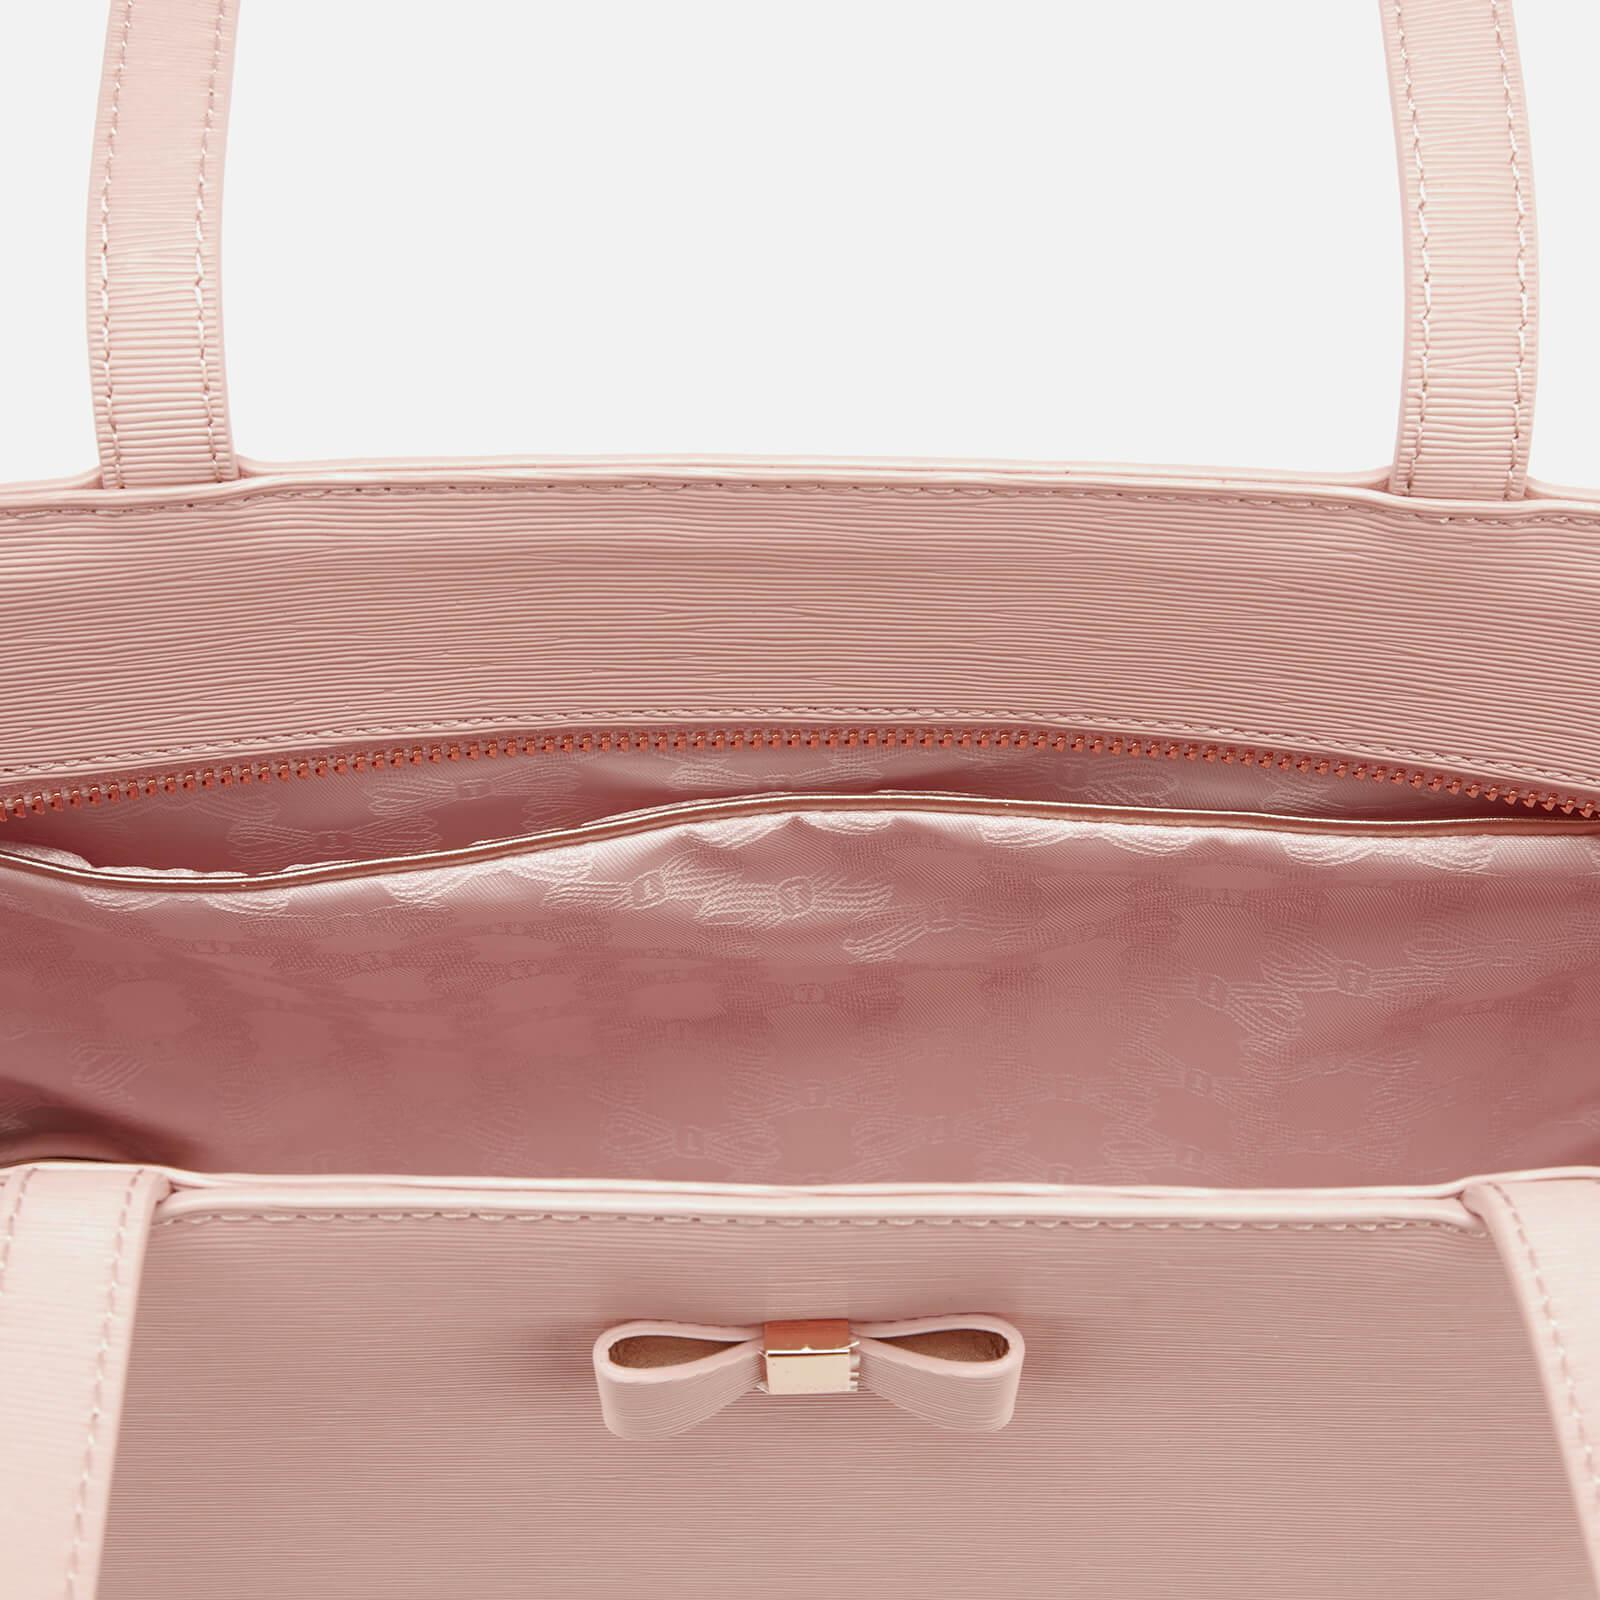 75c45d24314412 Lyst - Ted Baker Deanie Bow Detail Small Shopper Bag in Pink